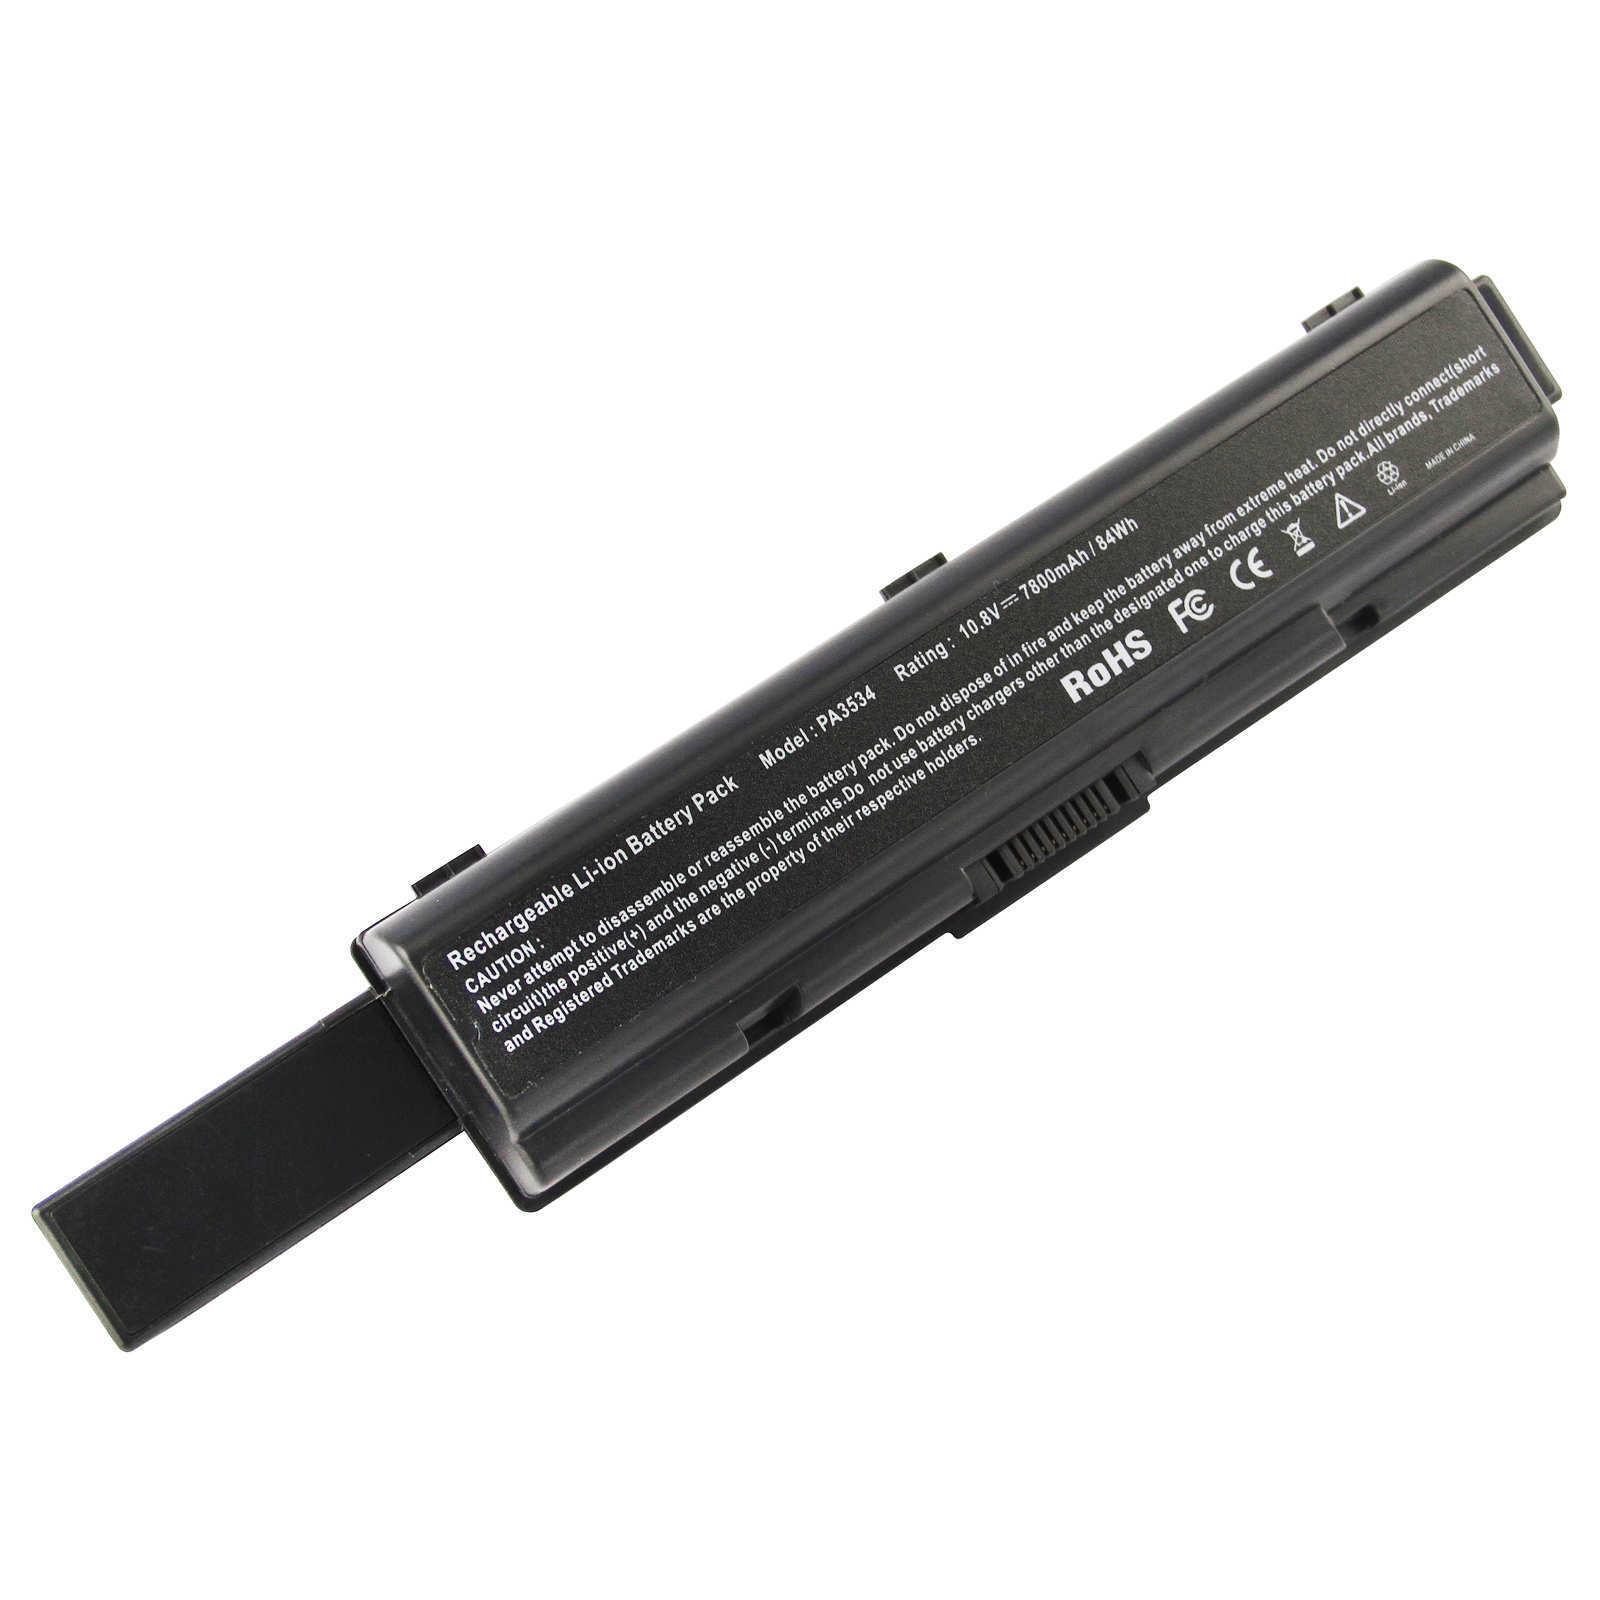 Replacement Toshiba Satellite A500-ST5606 Battery